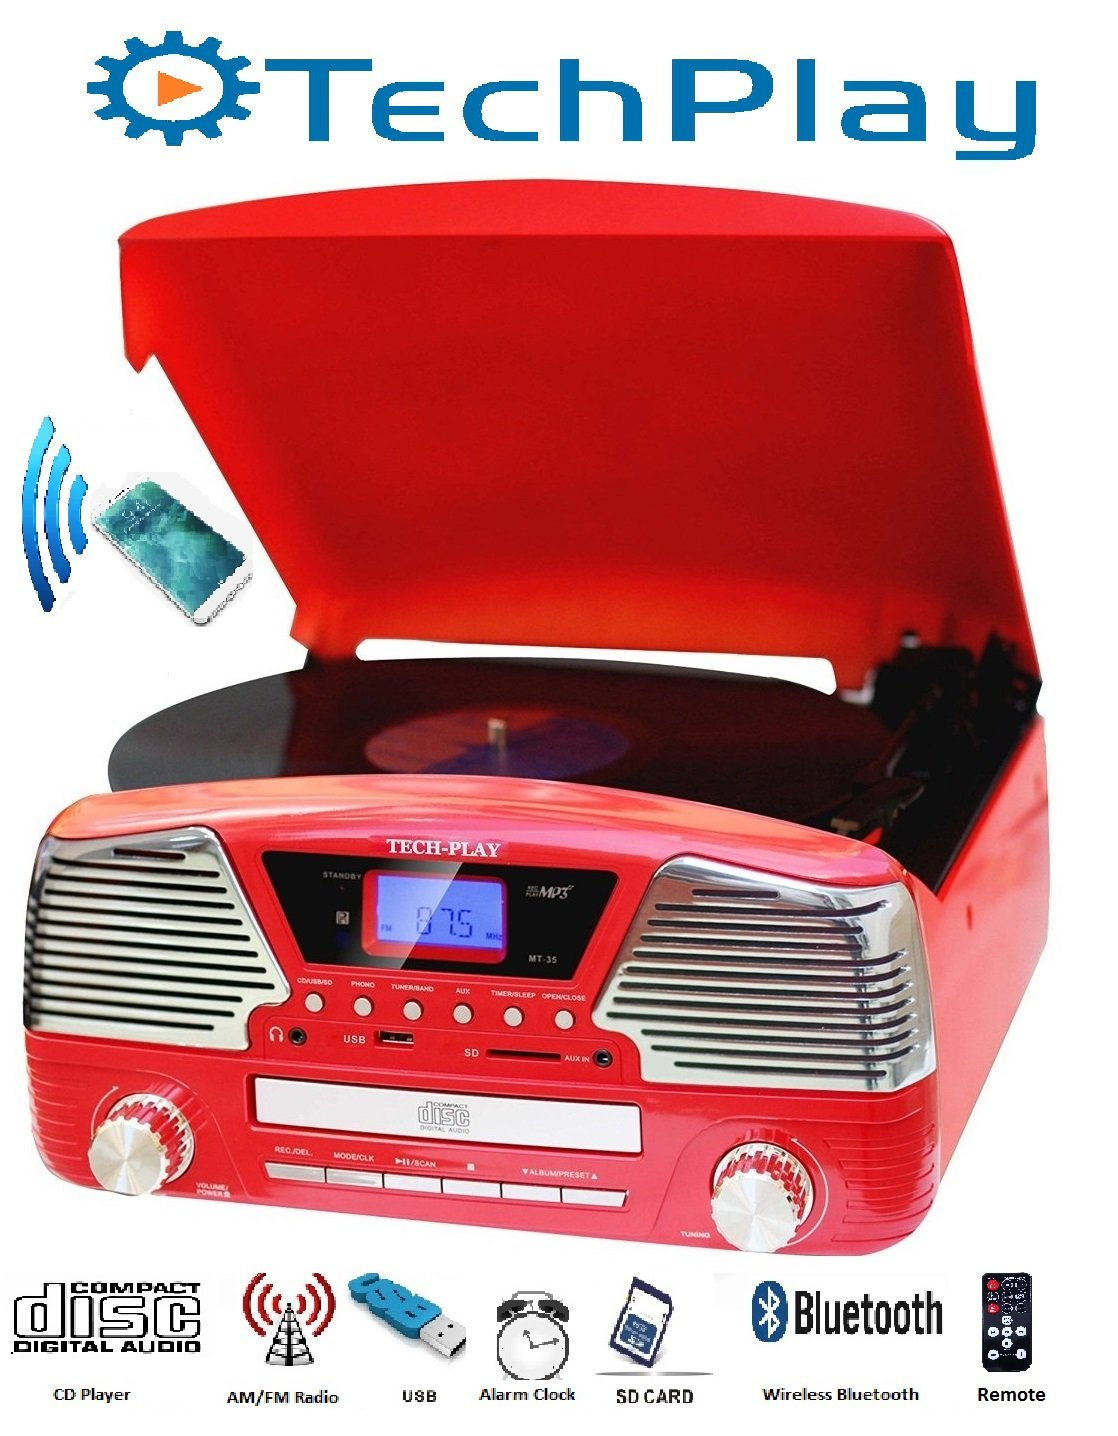 TechPlay ODC35BT RED with Bluetooth, 3 Speed Turntable Programmable MP3 CD Player, USB/SD, Radio & Remote Control by TechPlay